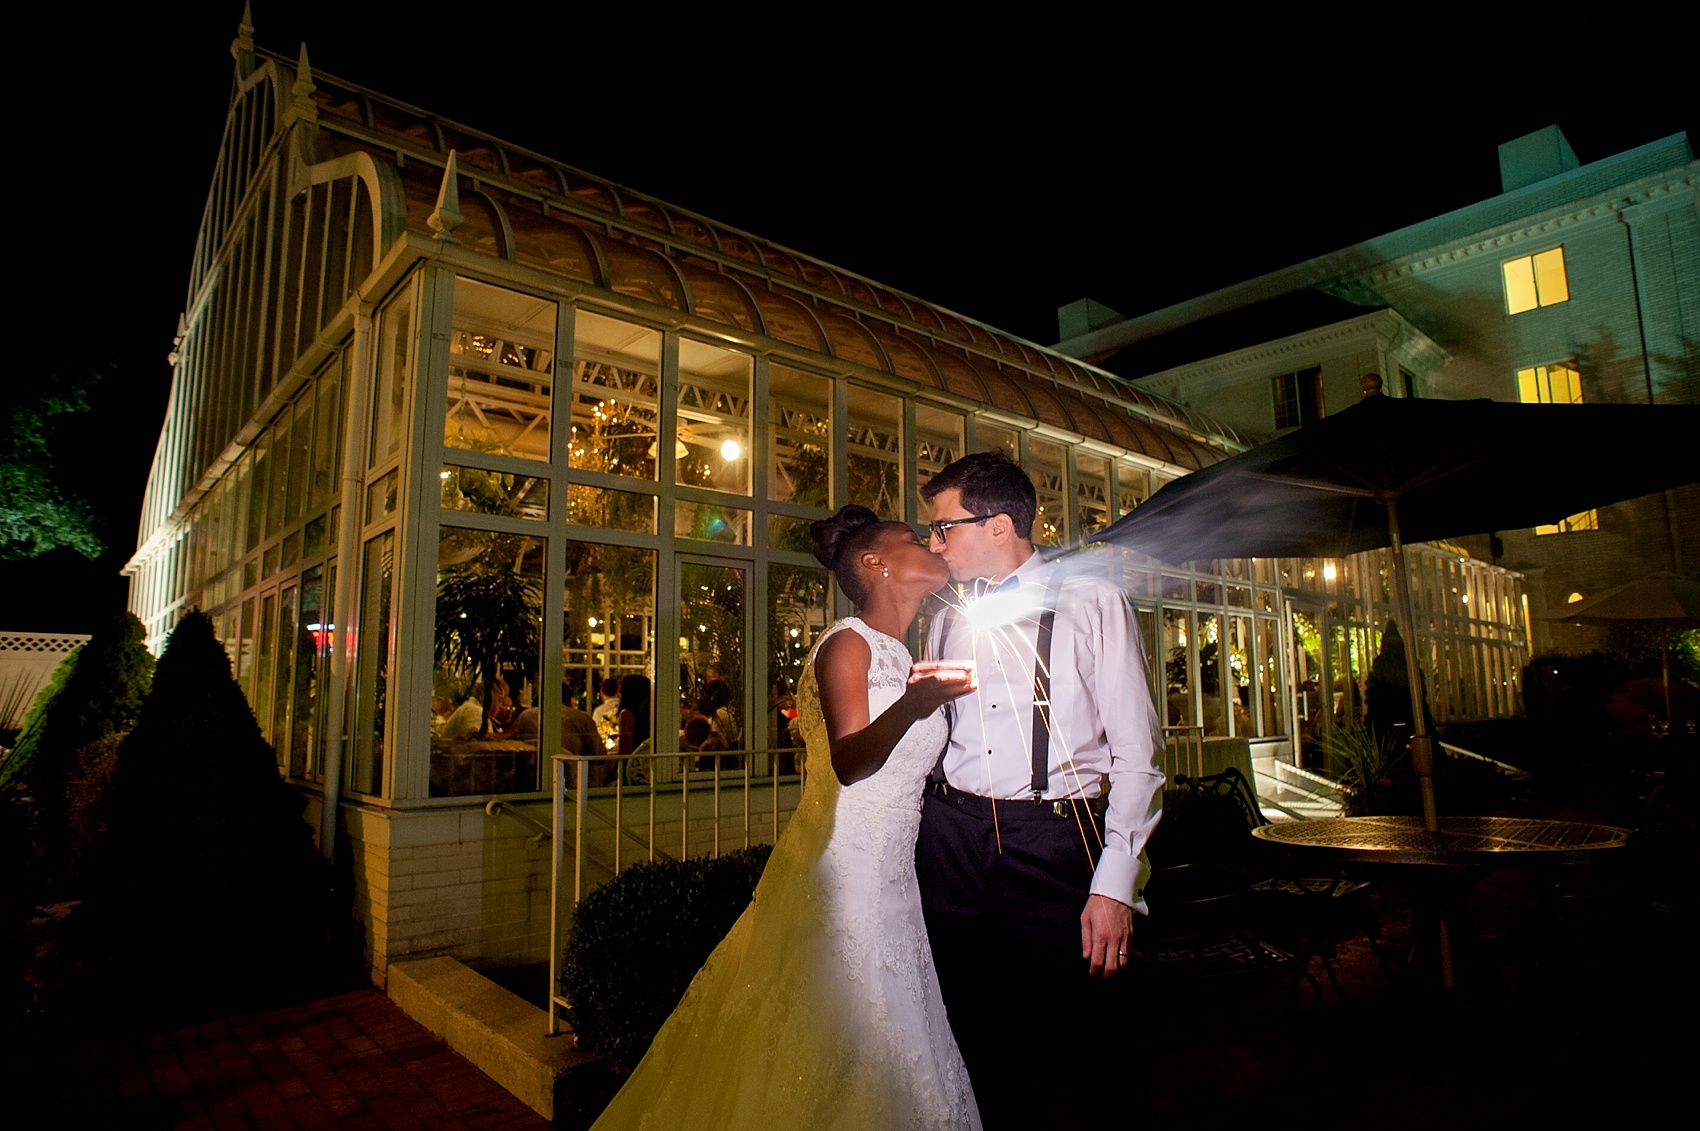 Sparkler photos at wedding reception at the Conservatory at The Madison Hotel, New Jersey. Photos by Mikkel Paige Photography.